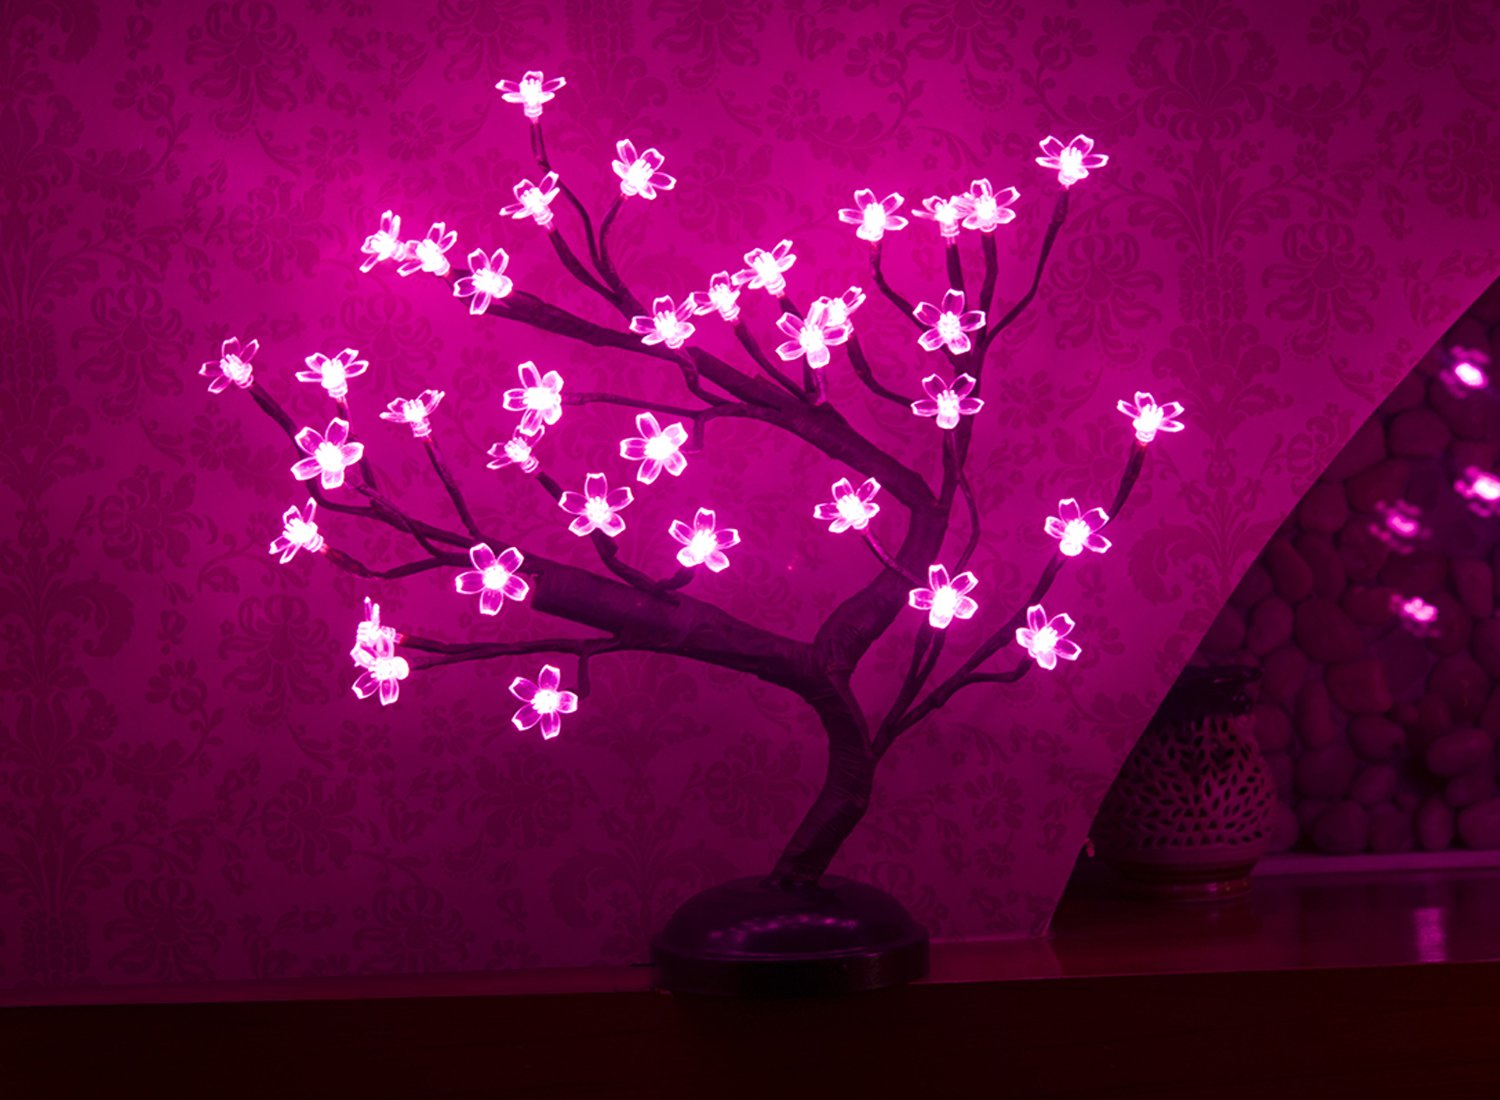 Lightshare 16Inch 36LED Cherry Blossom Bonsai Light, Pink Light, Battery Powered and Plug-in Adapter (included), Built-in timer, Décor for Home/Festival/Party/Christmas/Night Light E Home International Inc. SSXTSD36B-PK